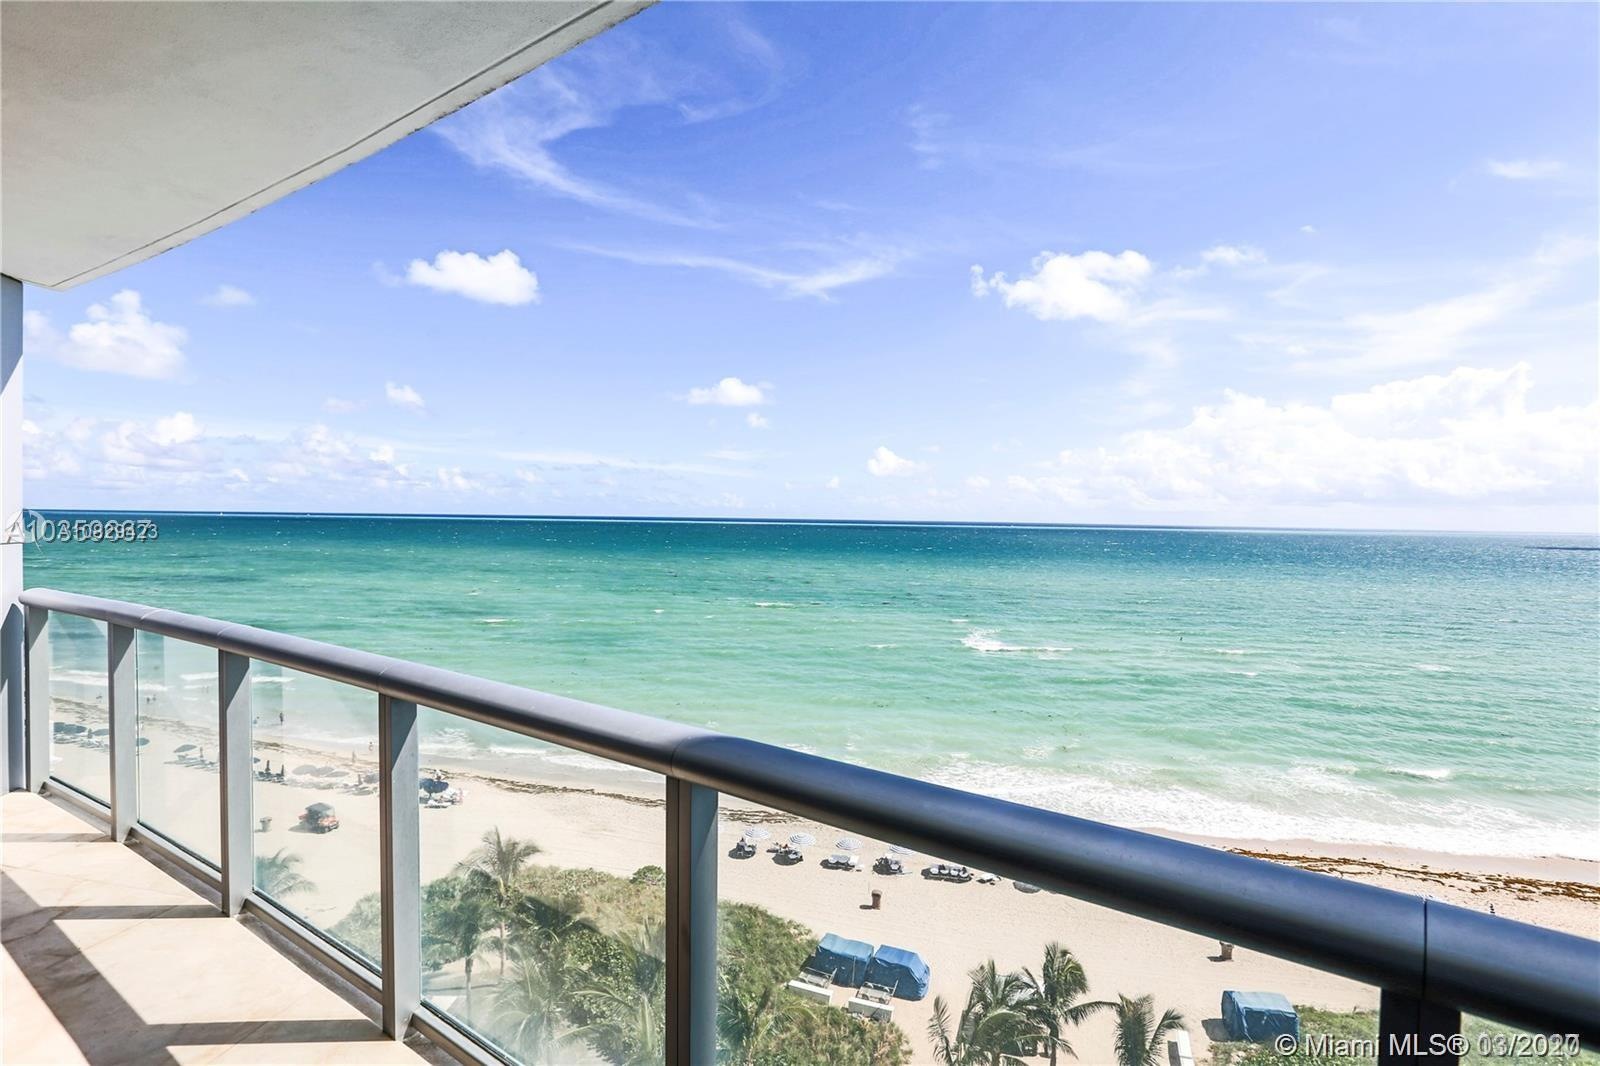 17001 Collins Ave 1005, Sunny Isles Beach, FL 33160